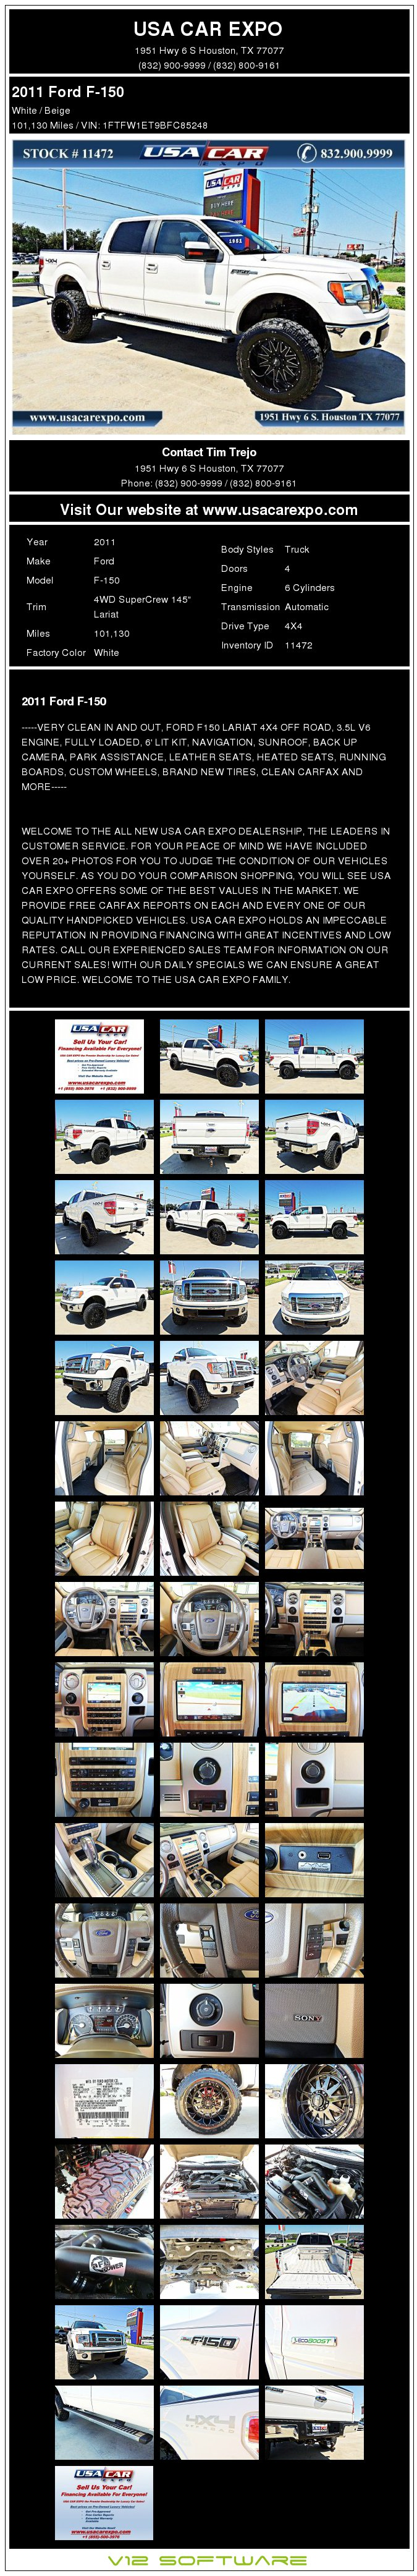 $25,900, 2011 Ford F-150 Lariat 4x4 Lifted